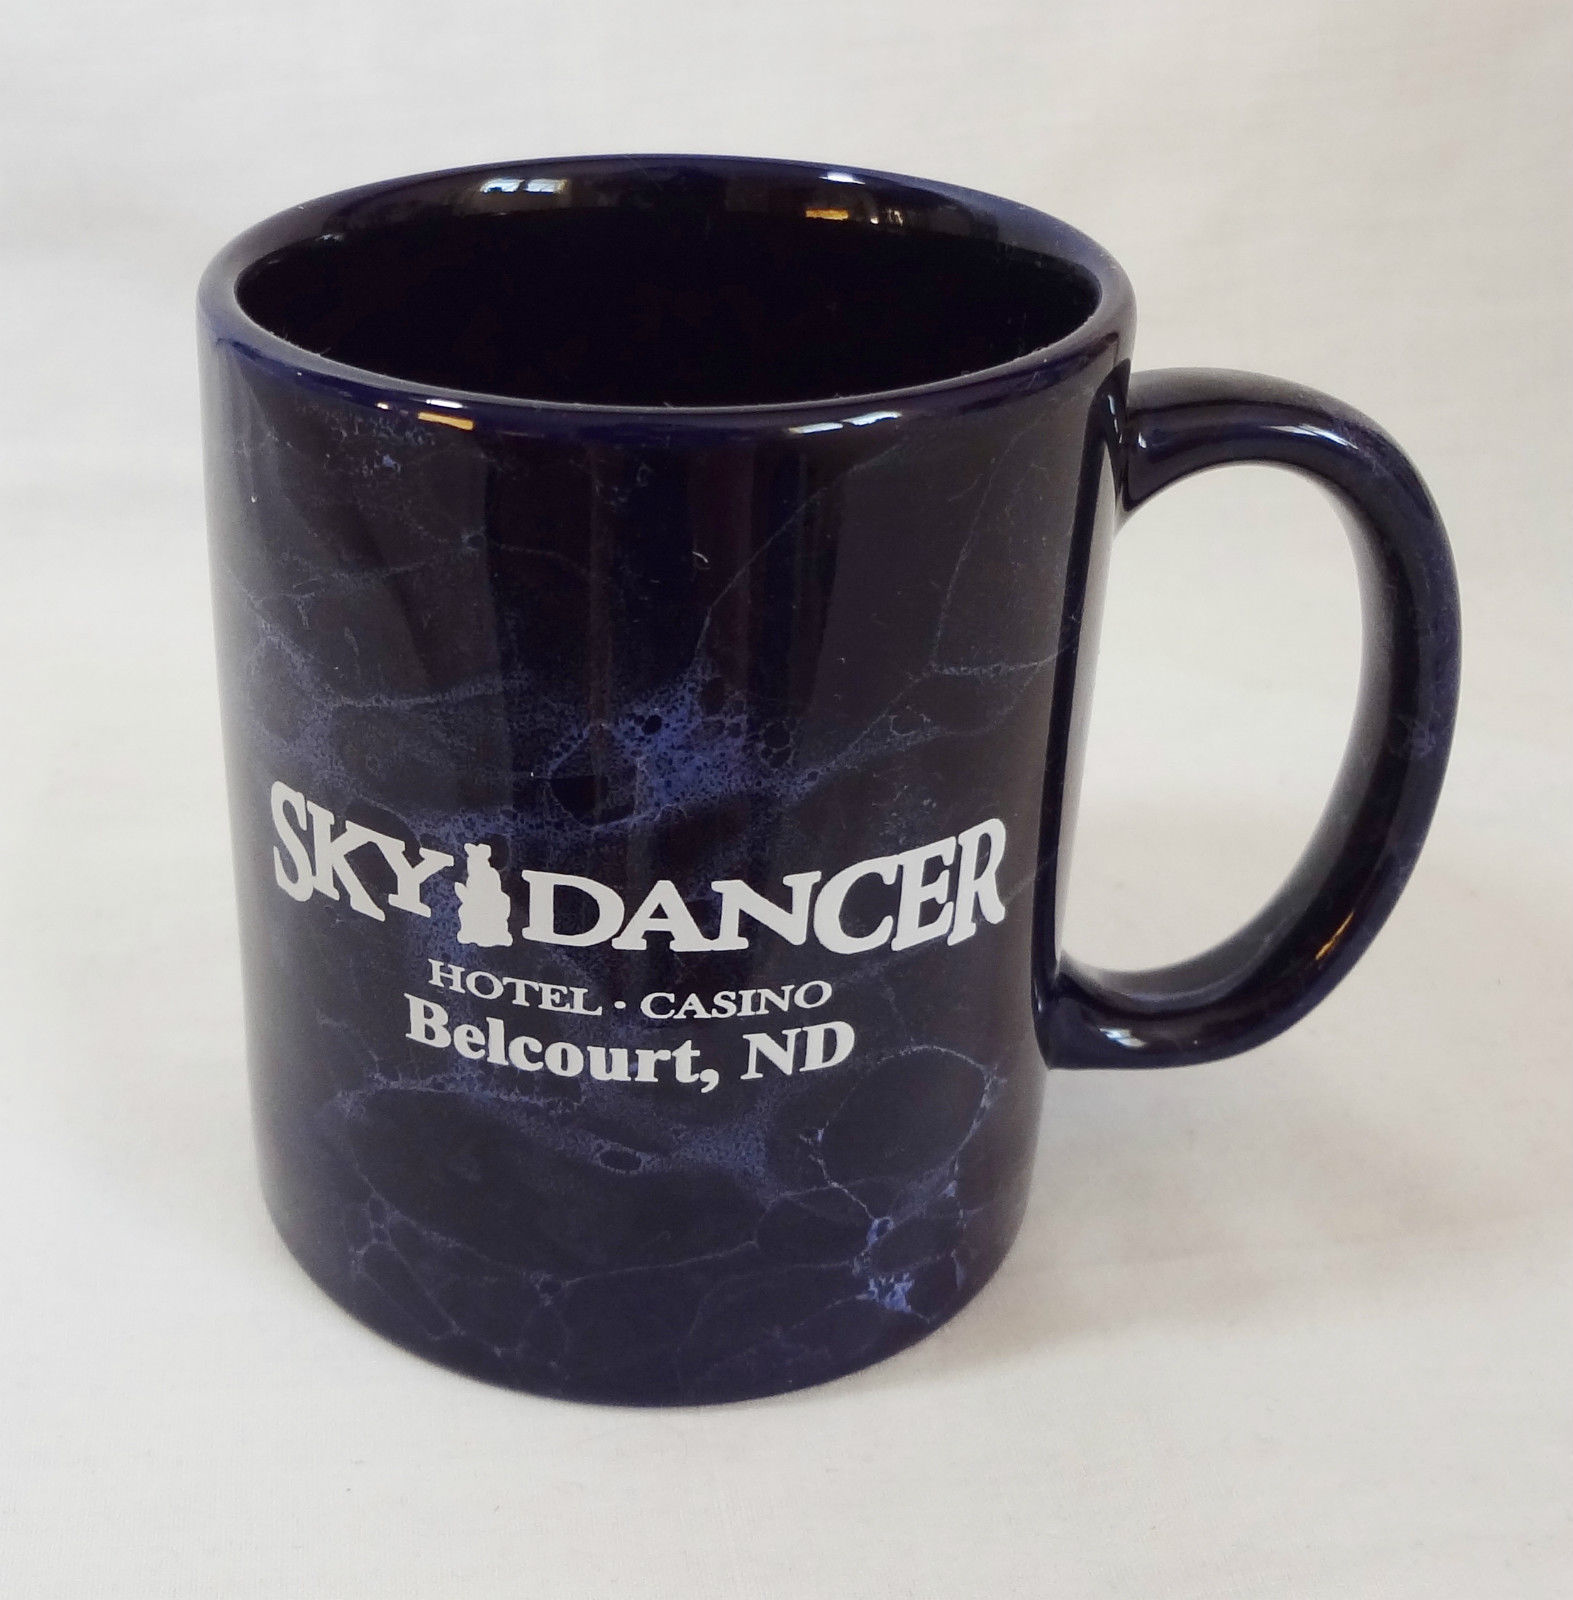 Sky Dancer Hotel Casino Belcourt ND 10 oz Coffee Mug Cup Souvenir